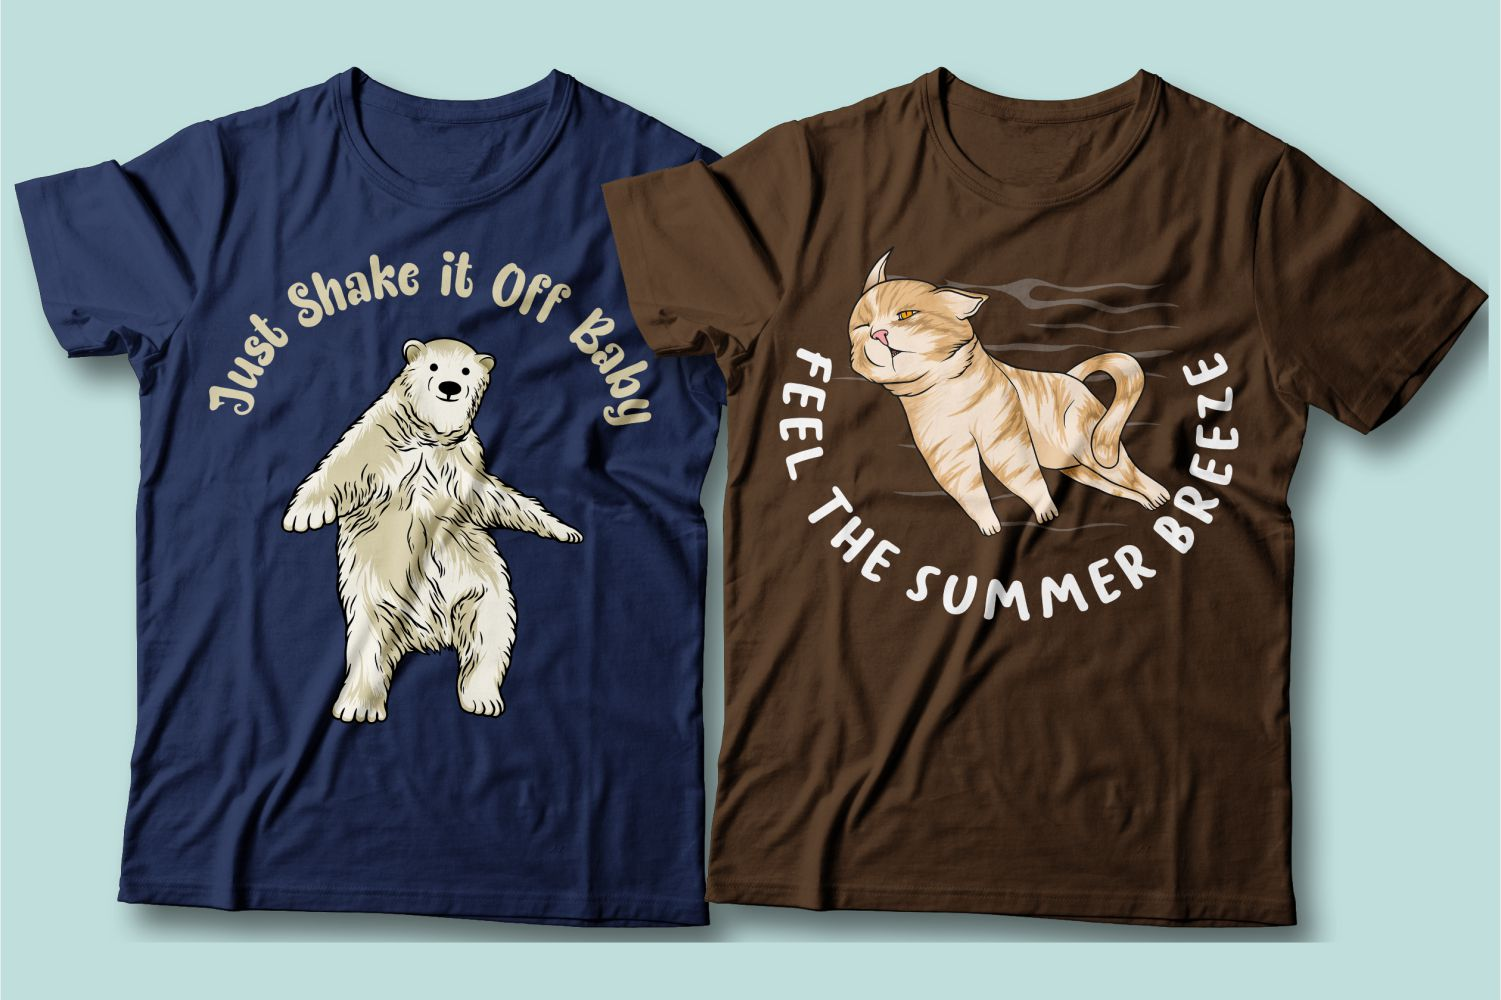 Dancing bear and flying cat. Something you just don't see on these T-shirts.